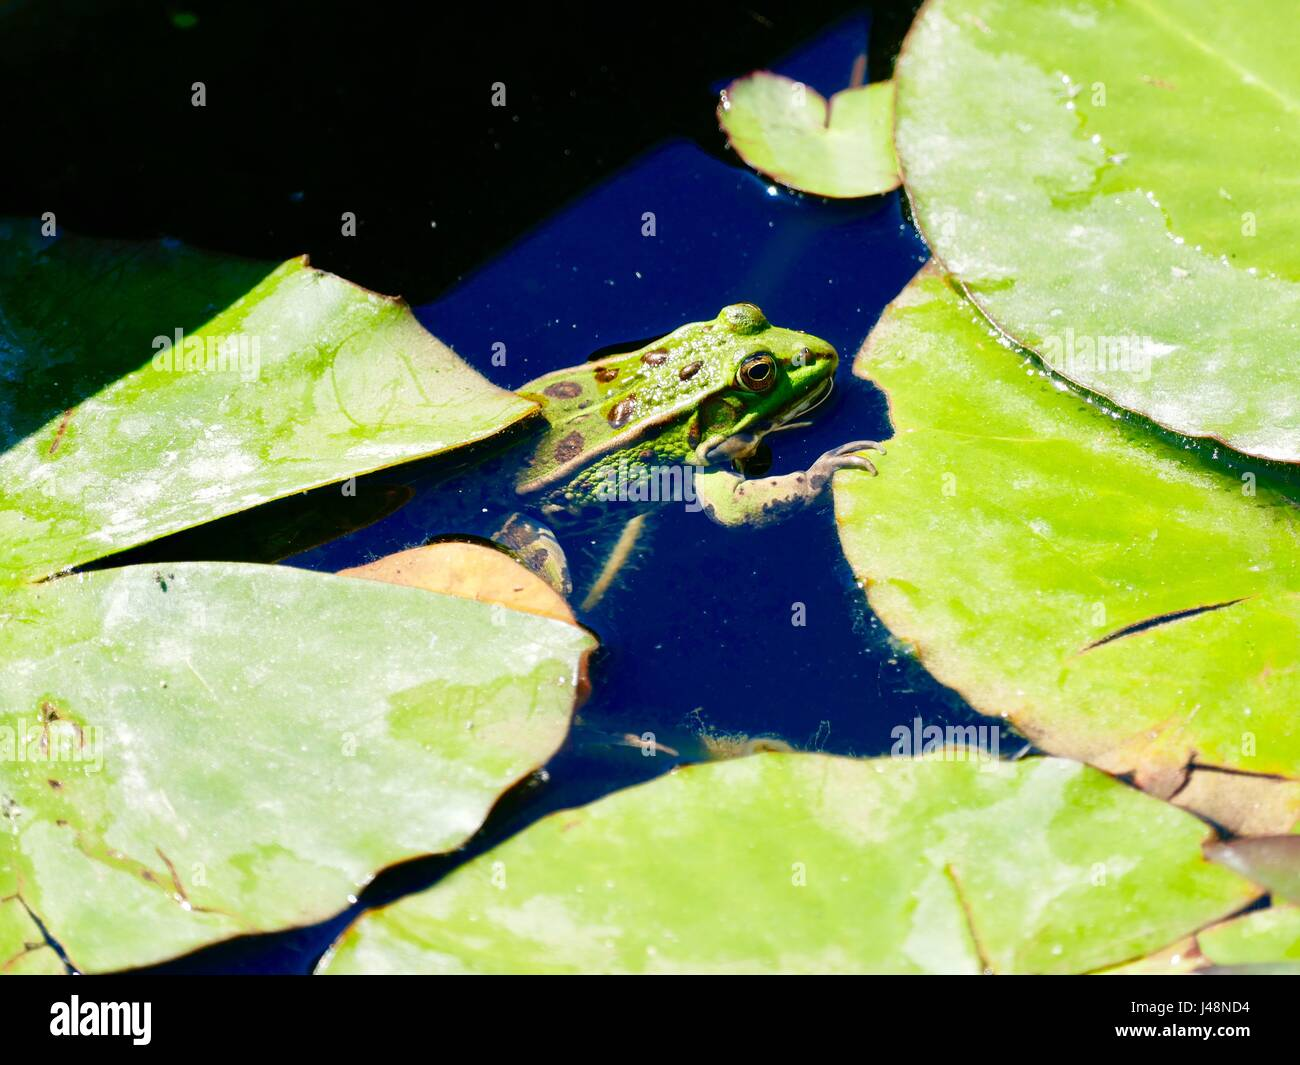 Green European edible frog with claw resting on a lily pad. Paris, France - Stock Image